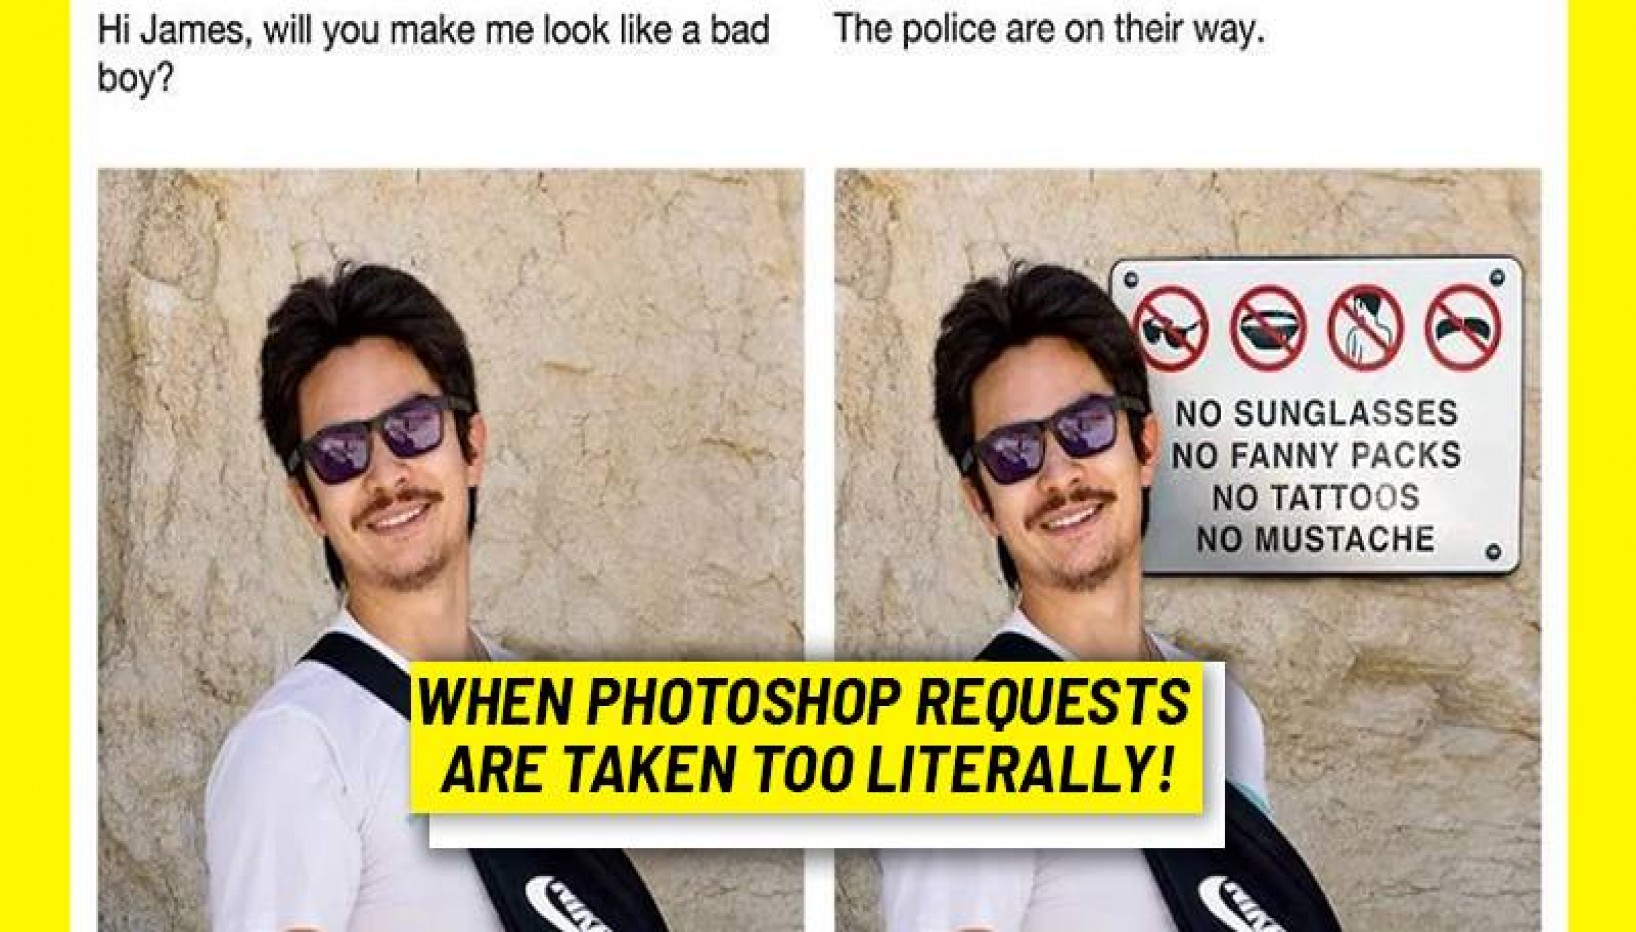 These People Had Their Photoshop Requests Fulfilled, But At What Cost?